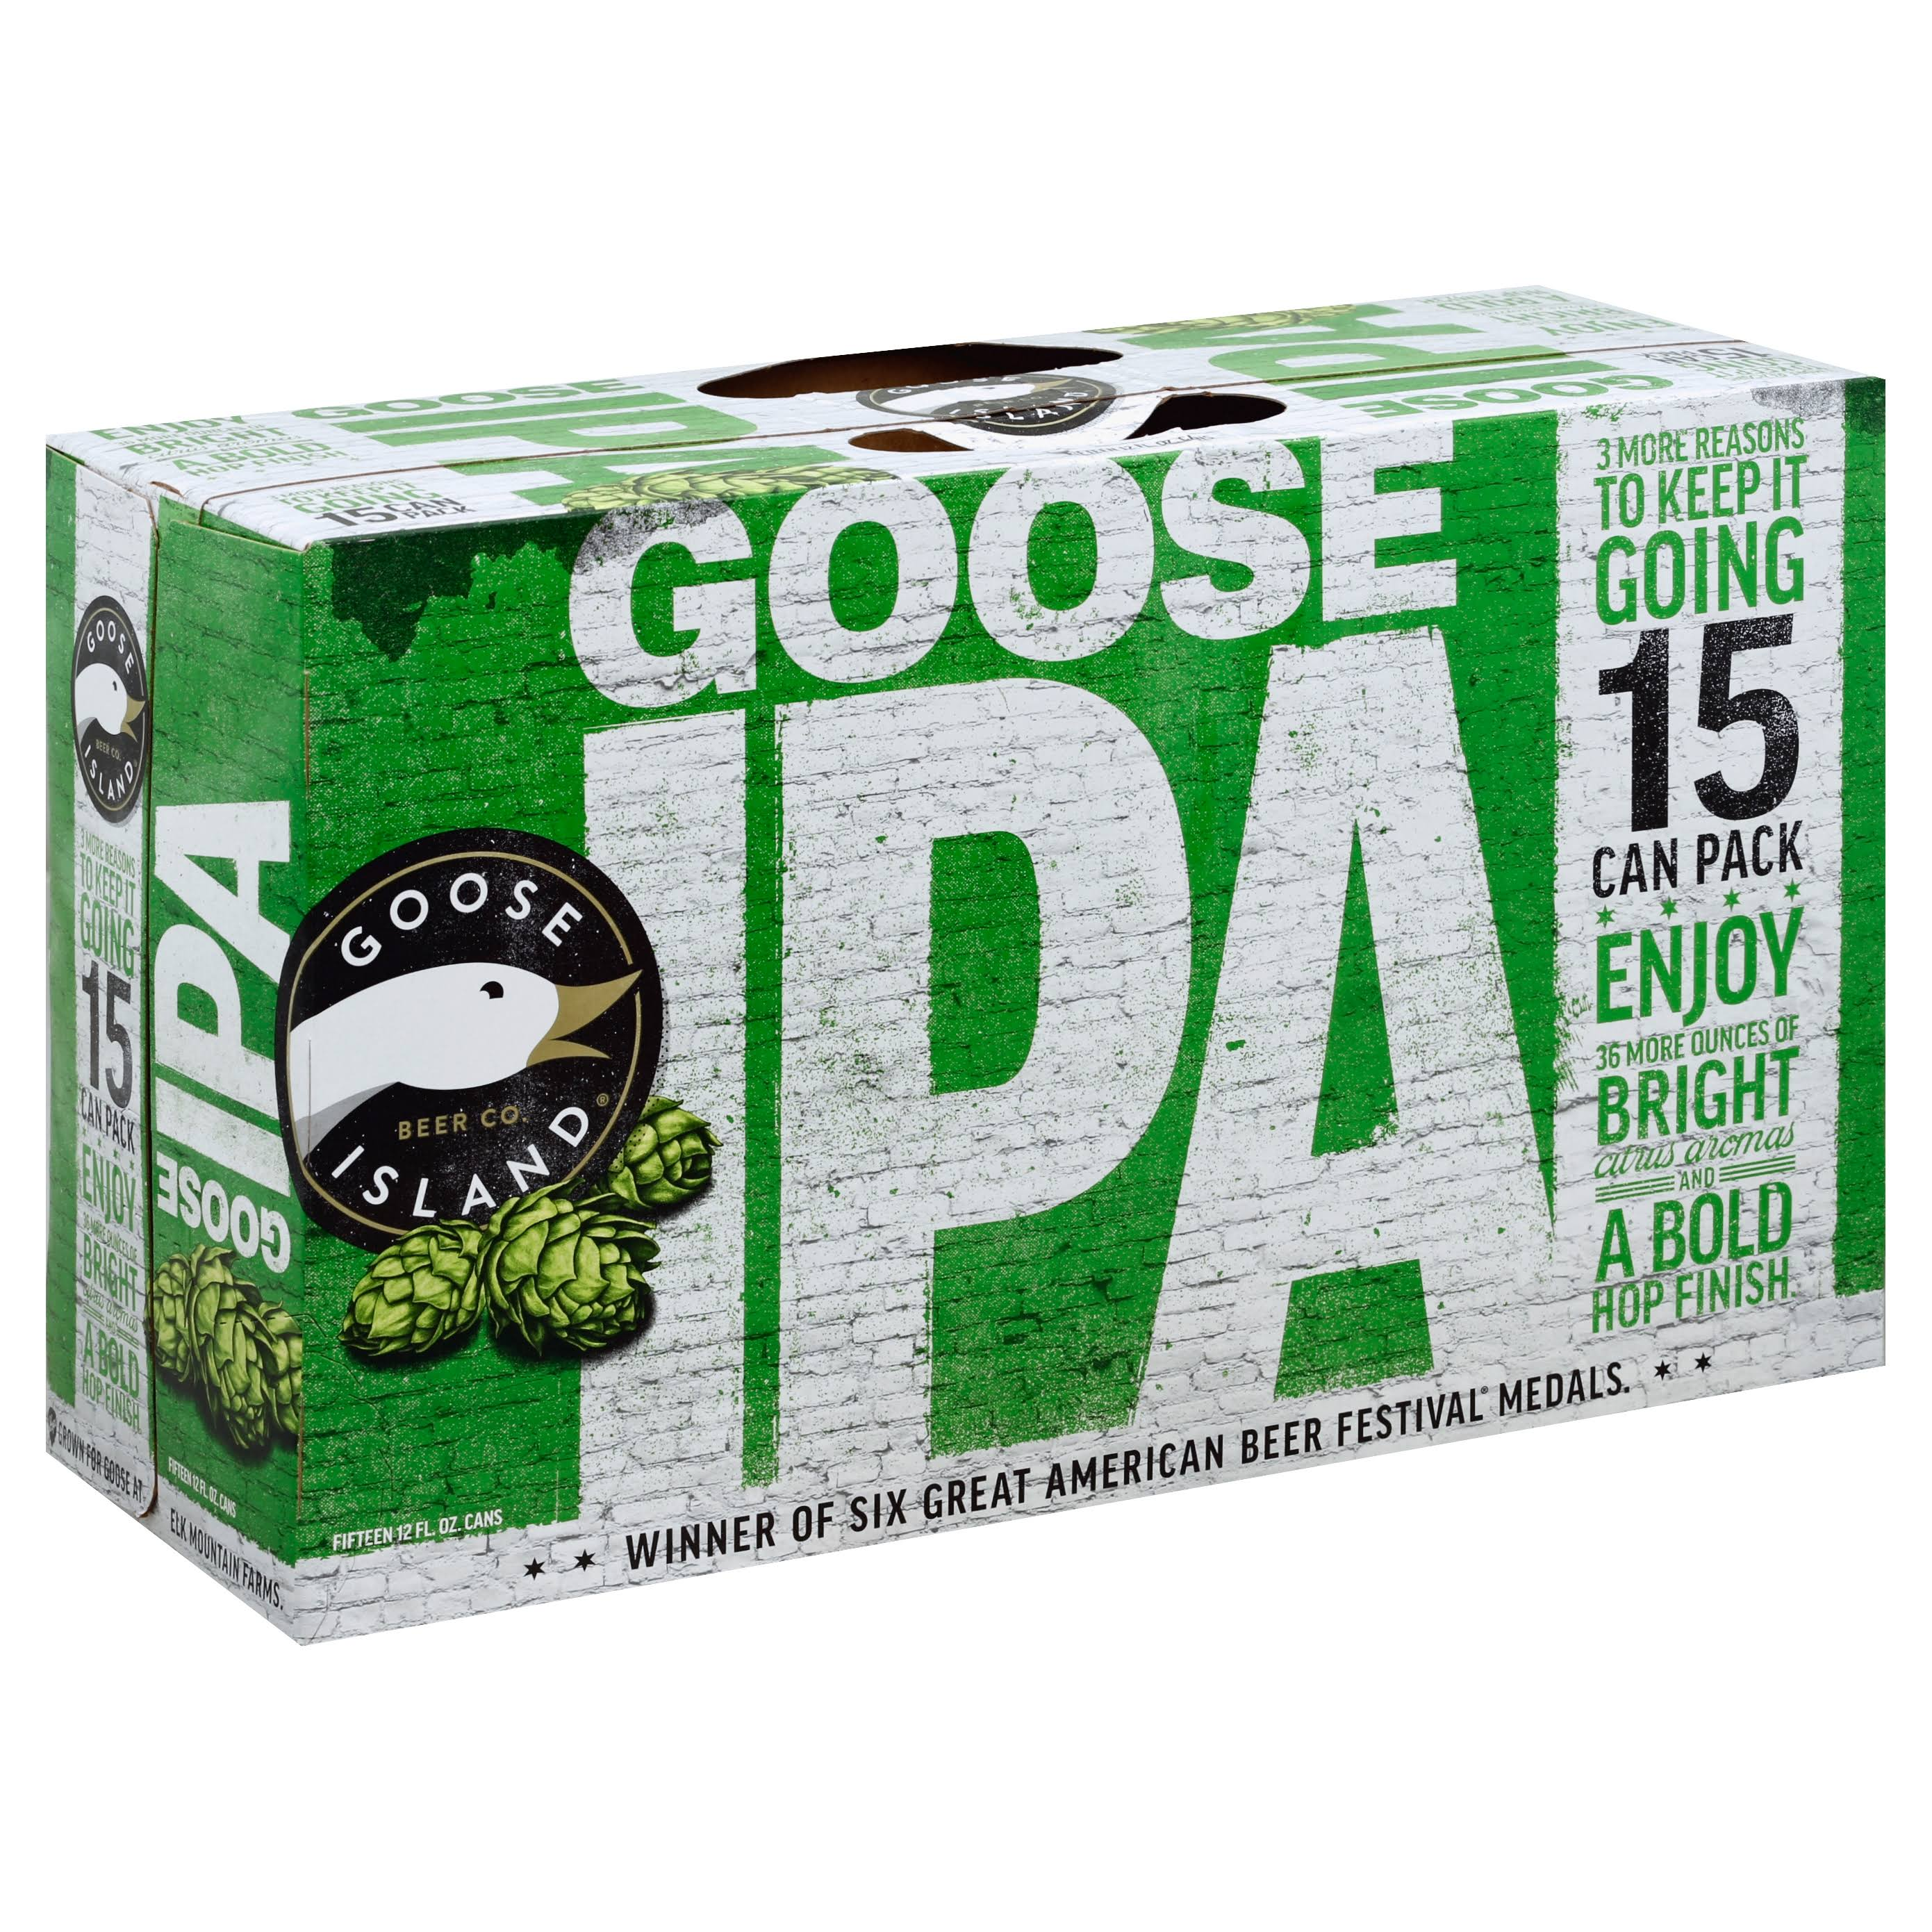 Goose Island Beer, Goose IPA, 15 Can Pack - 15 - 12 fl. oz cans